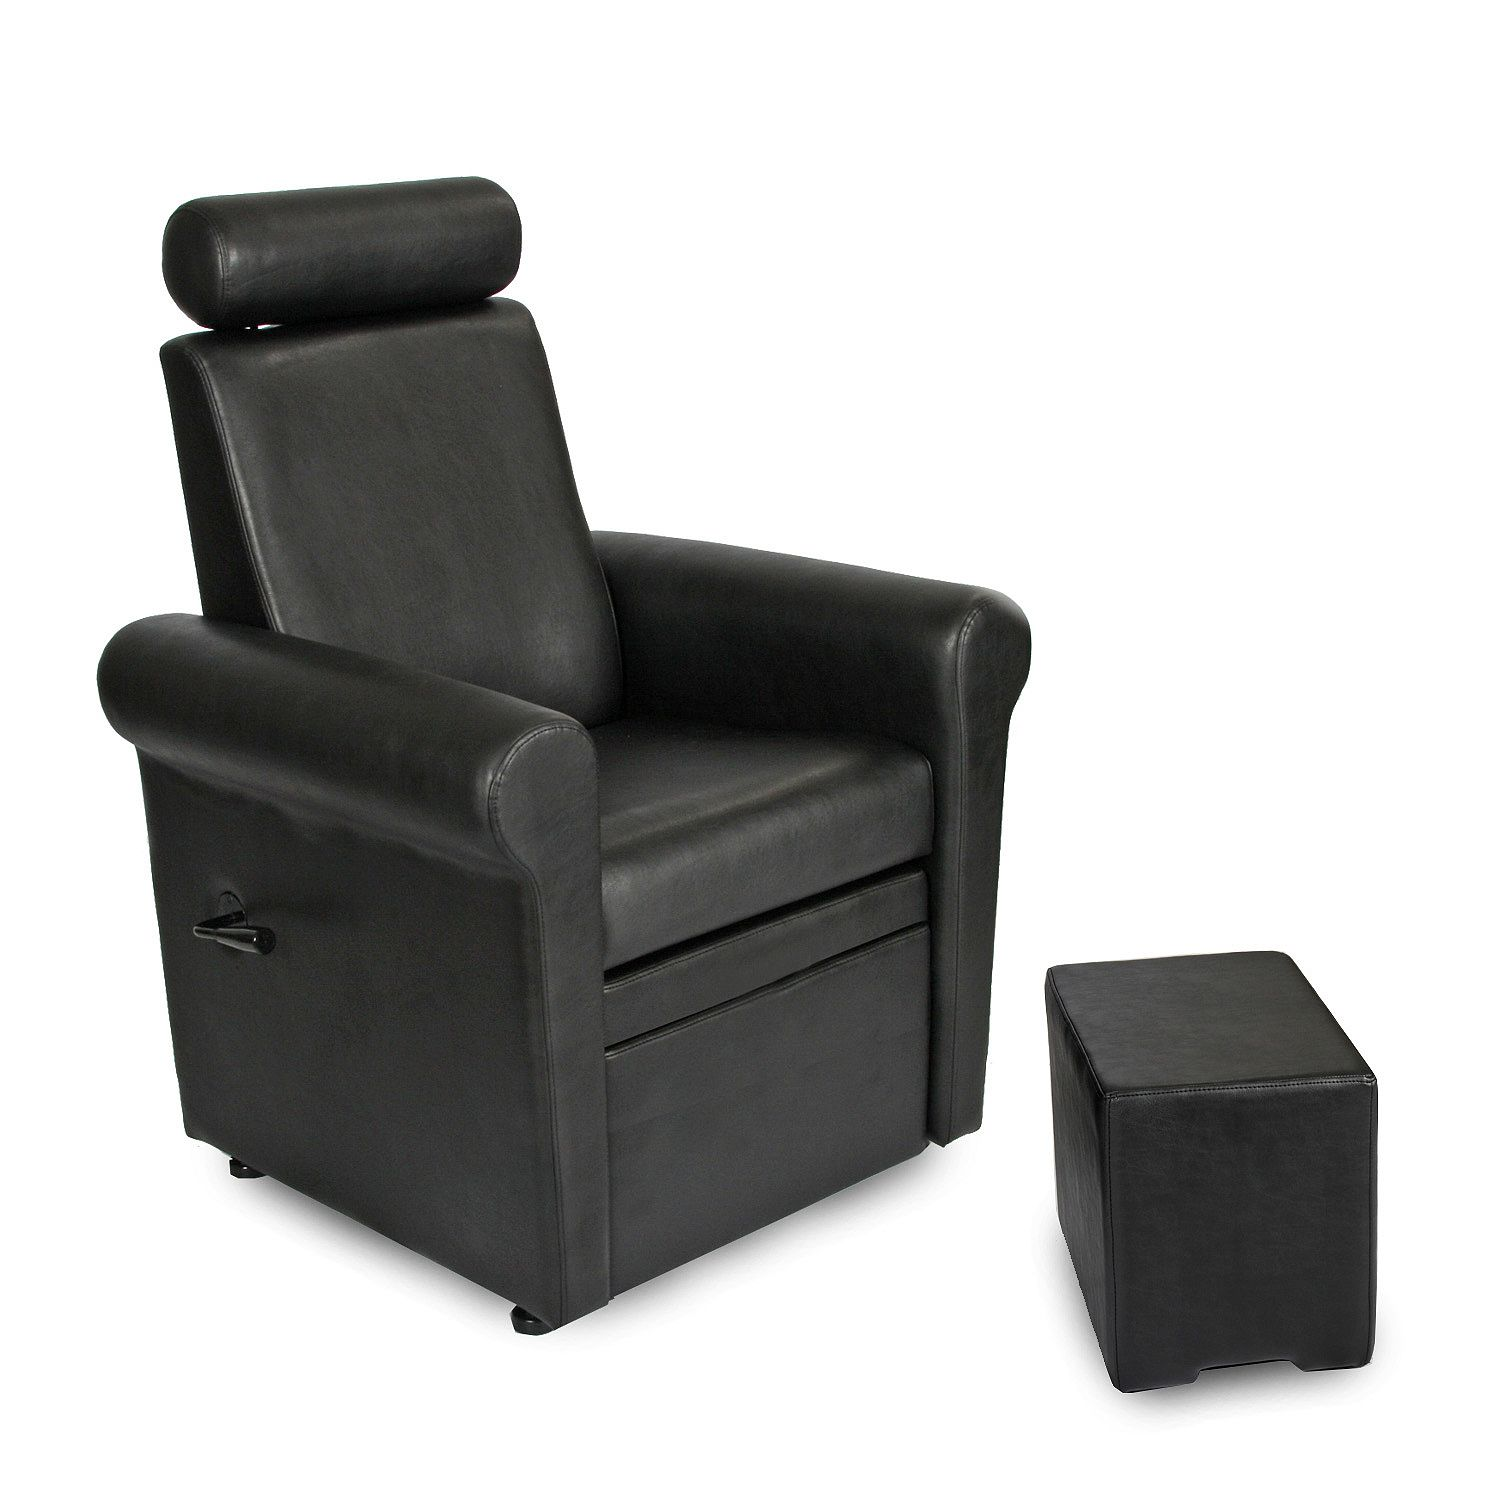 Independence Pedicure Spa Chair Stool & Footsie Spa Free Shipping